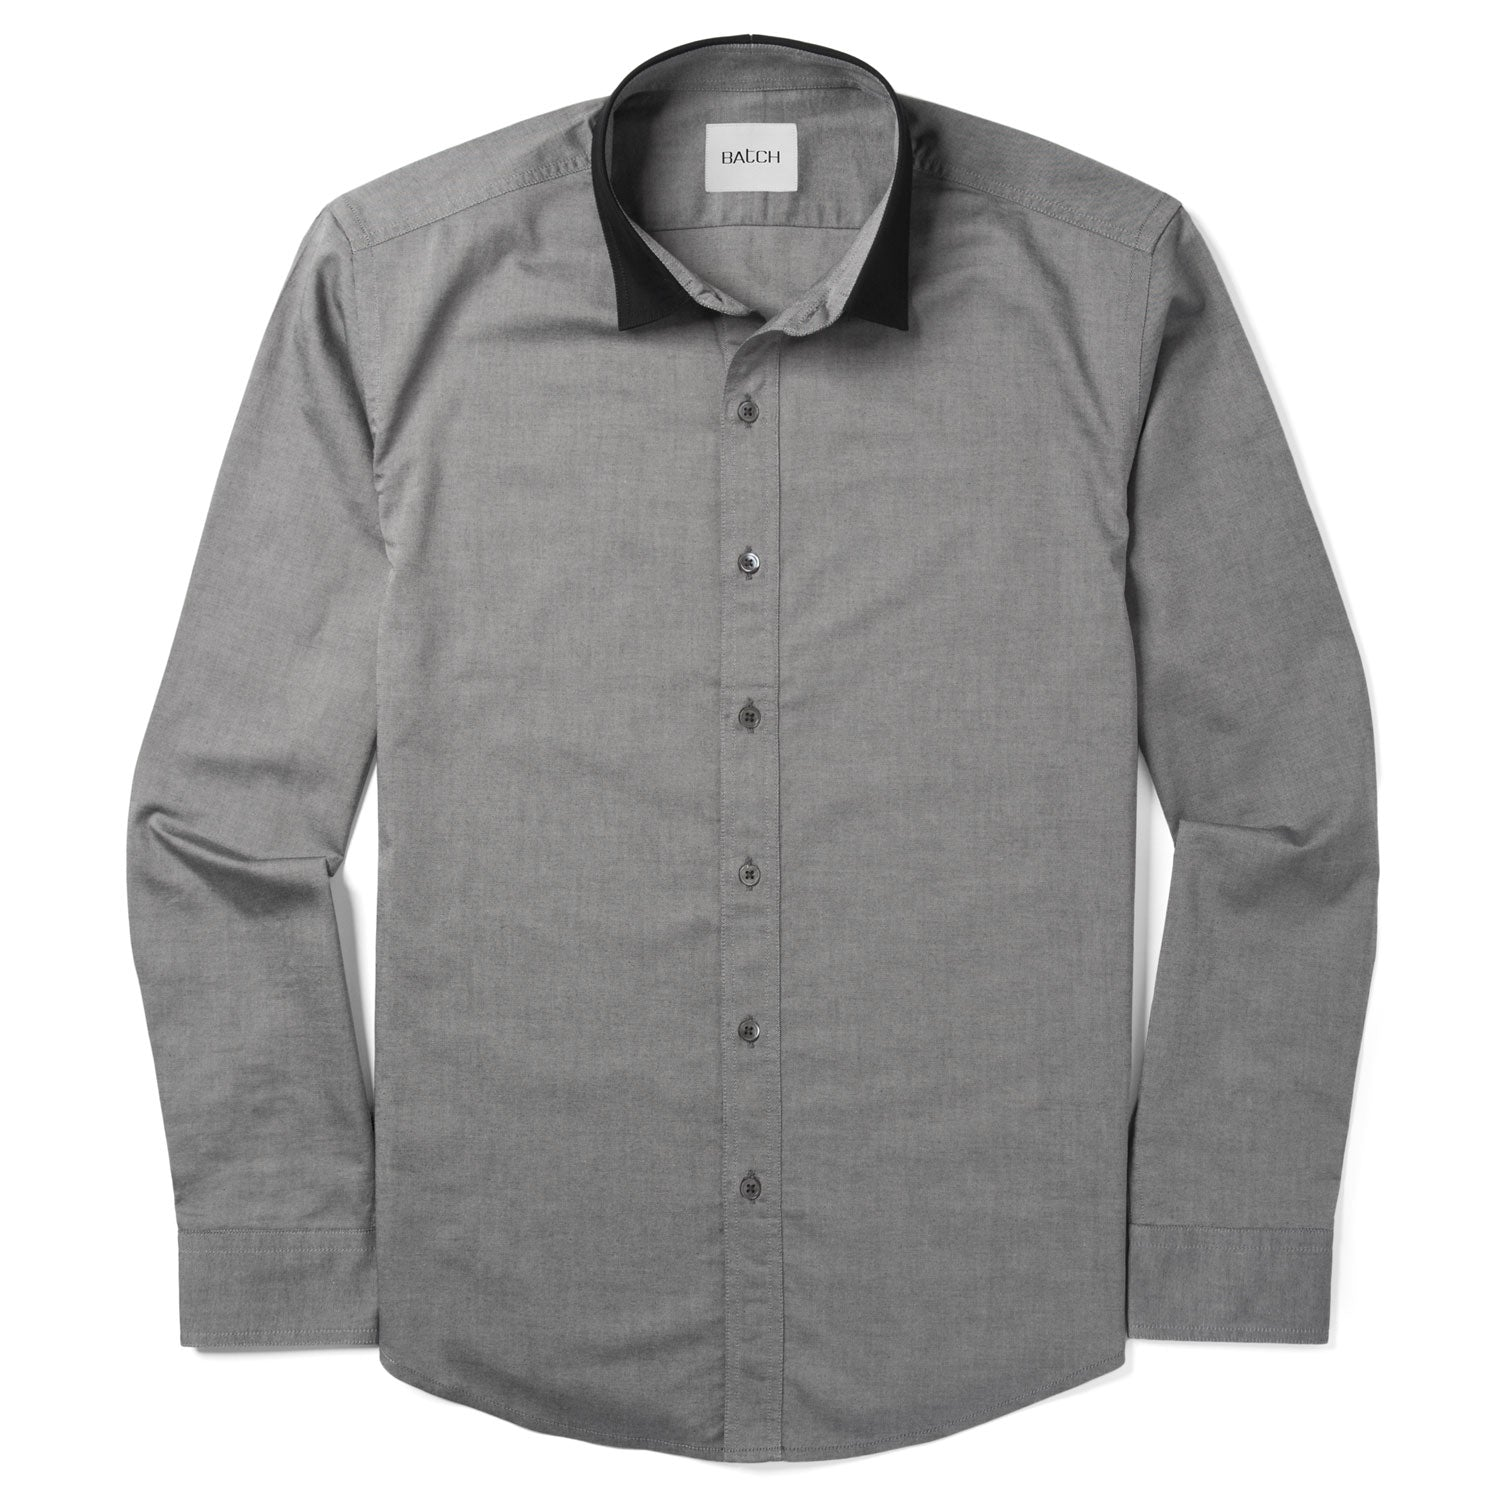 Contrast Collar Ladies Shirt - Smoke Gray Cotton Oxford